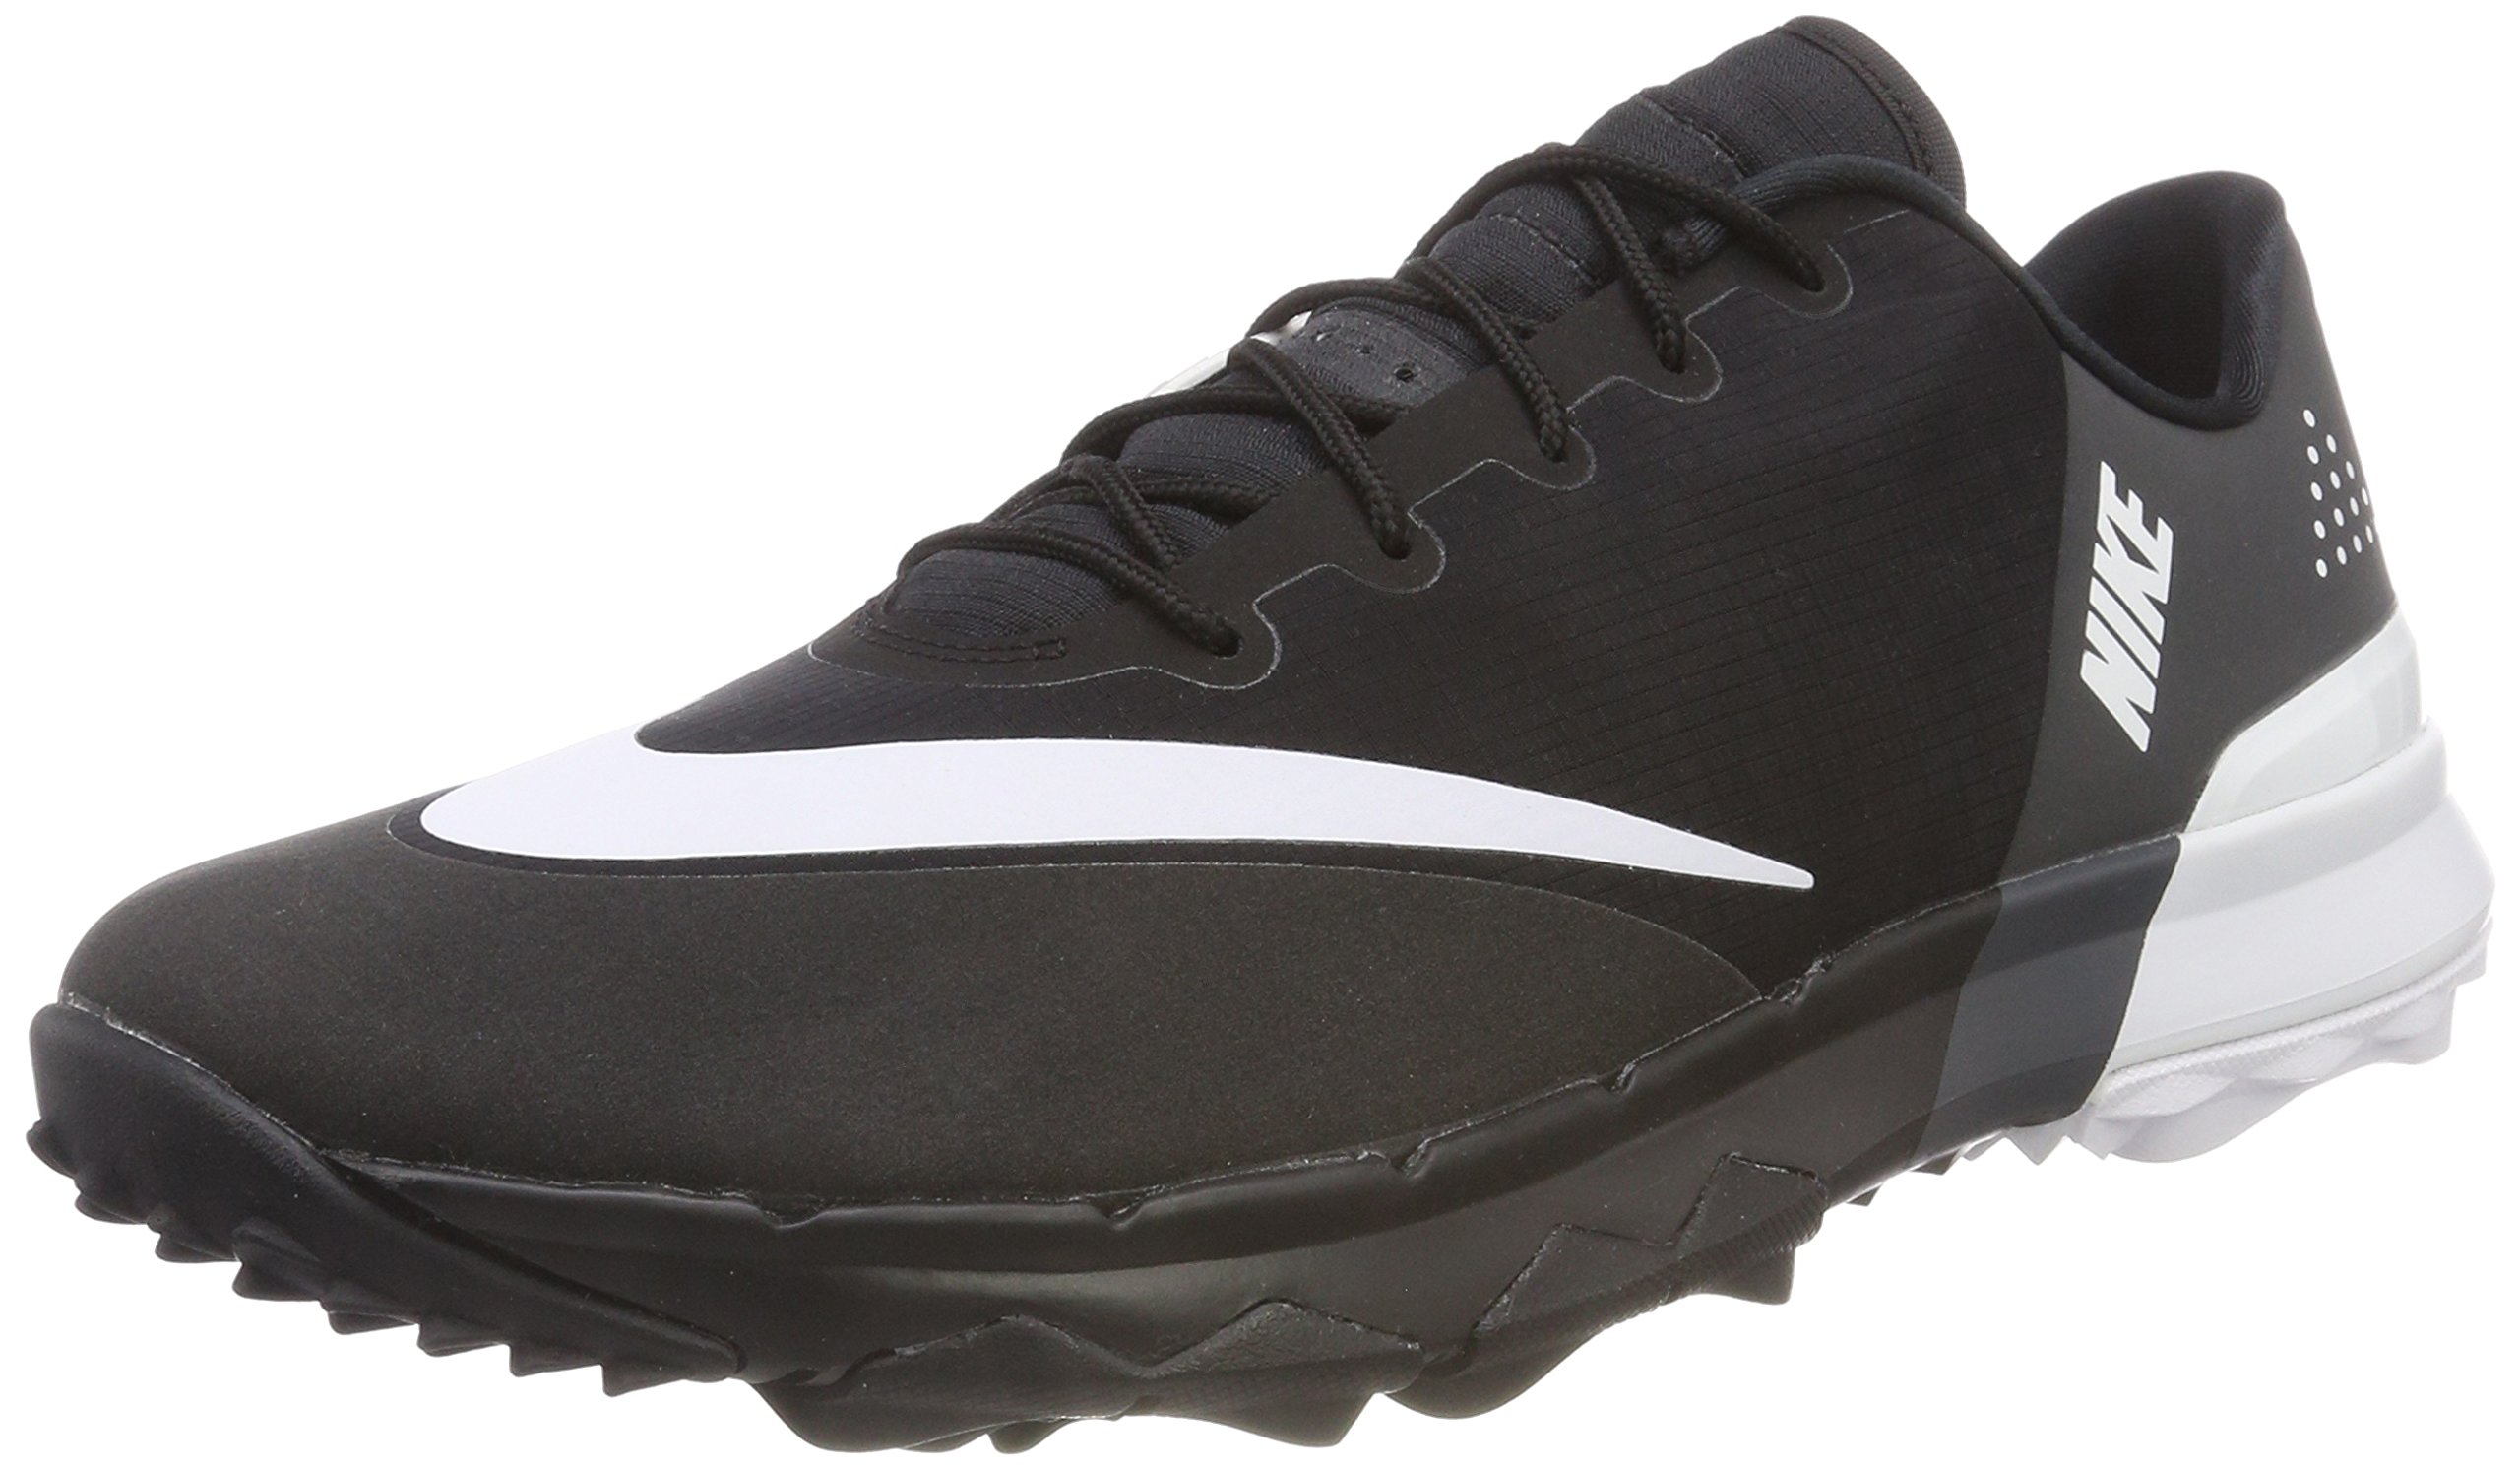 NIKE Men's FI Flex Golf Shoes, Black/White/Anthracite, 10 M US by NIKE